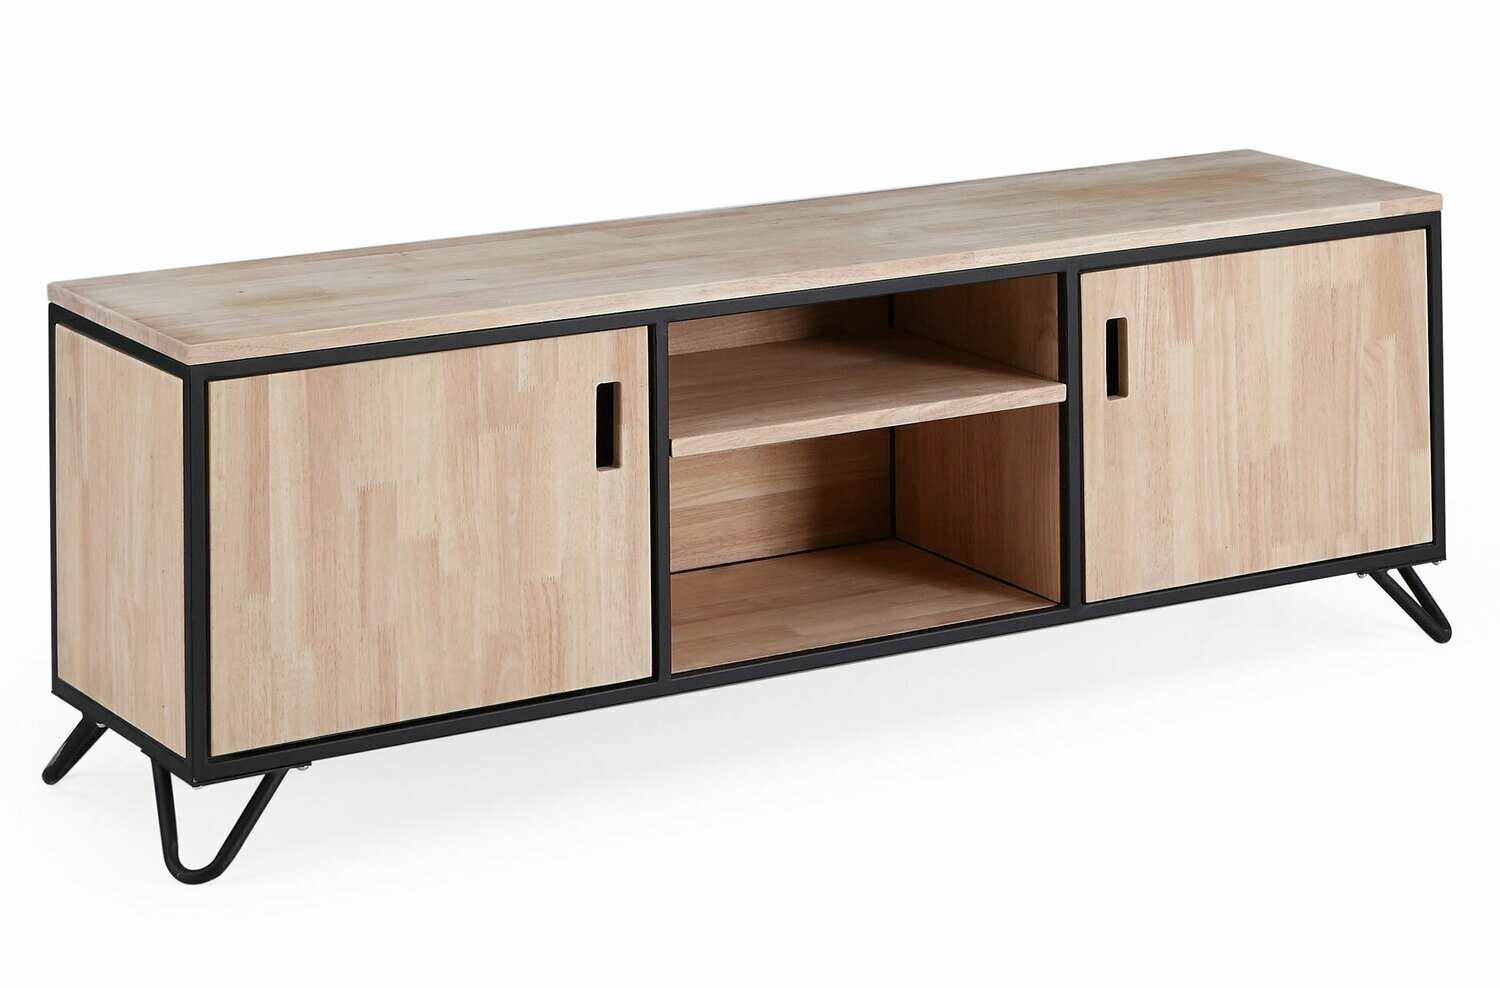 MUEBLE TV INDUSTRIAL ROBLE NORDISH / NEGRO.